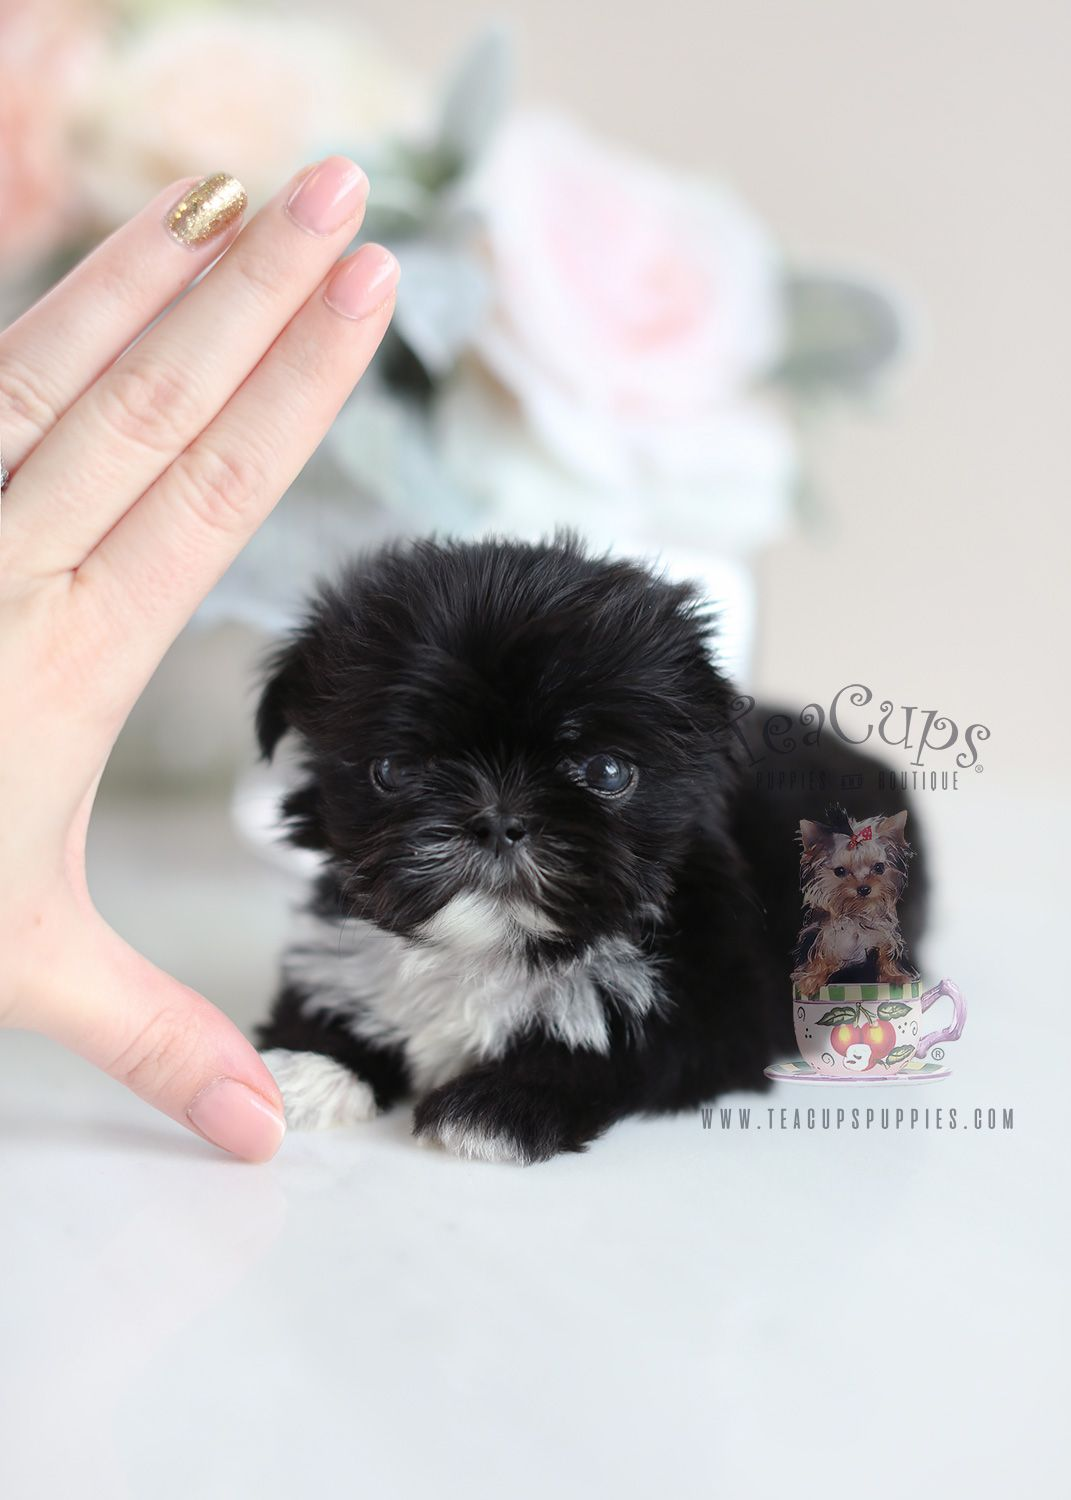 Imperial Shih Tzu By Teacup Puppies Boutique Locally Bred And Home Raised In South Florida Imperialshih Teacup Puppies Shih Tzu Puppy Really Cute Puppies